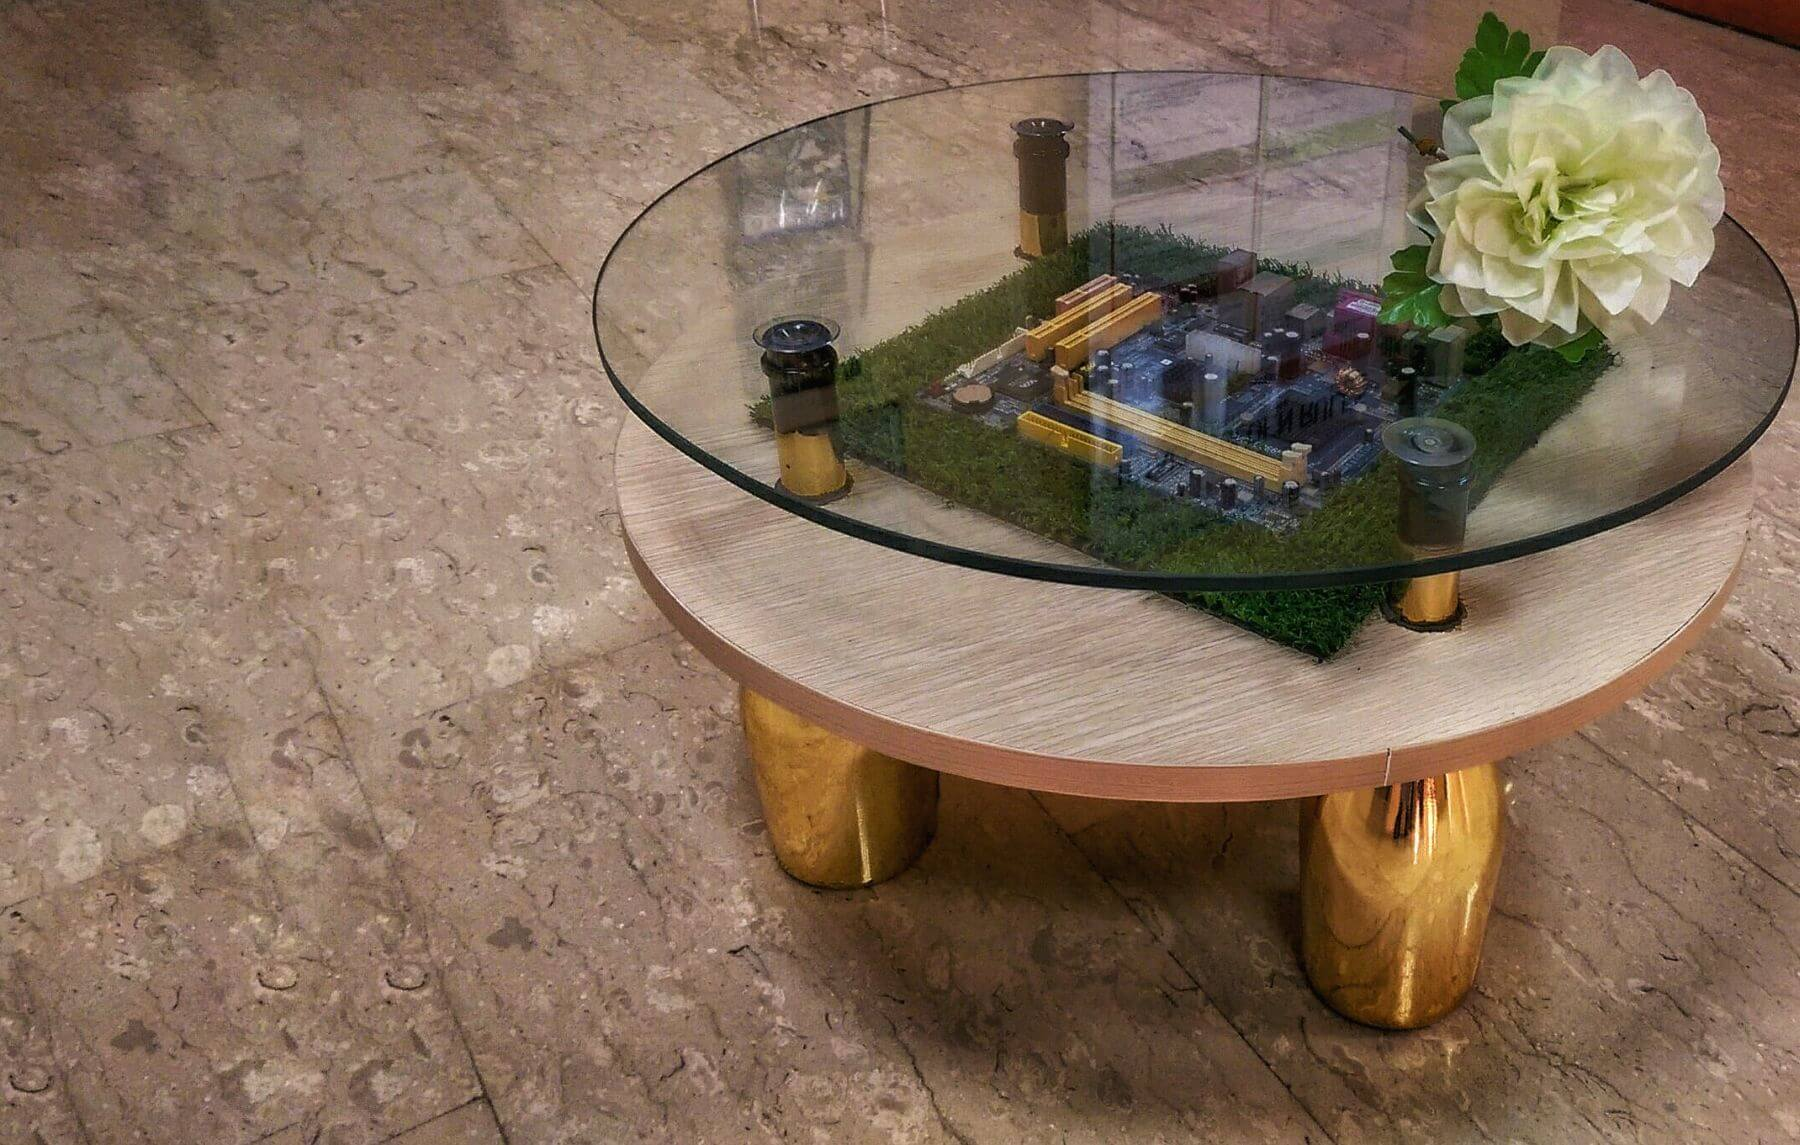 Bouteille coffee table, by Amina Saleh in Abuja, Nigeria